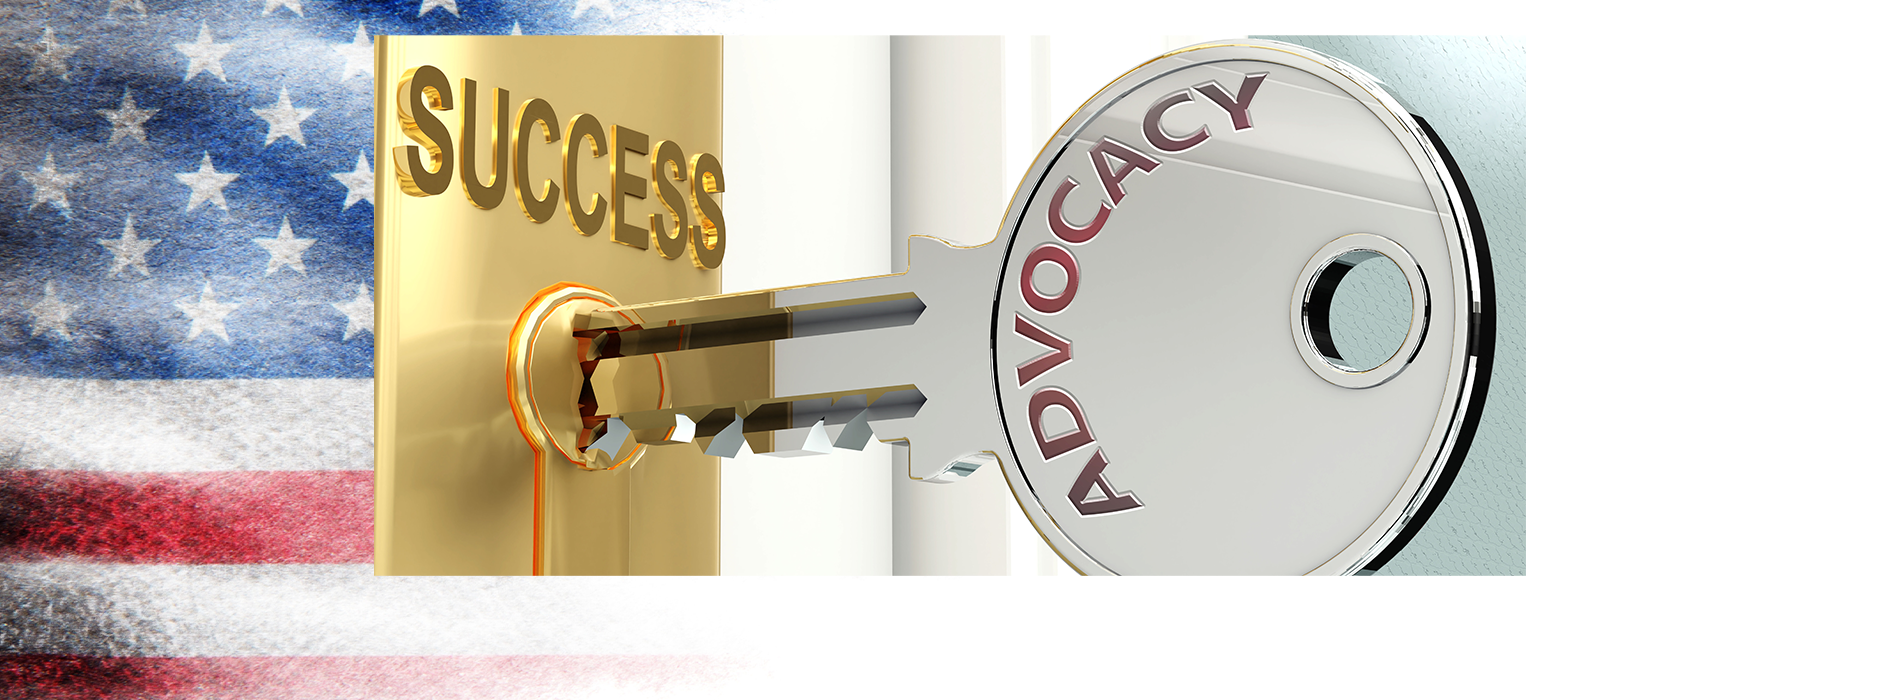 Advocacy and success on a key in lock.